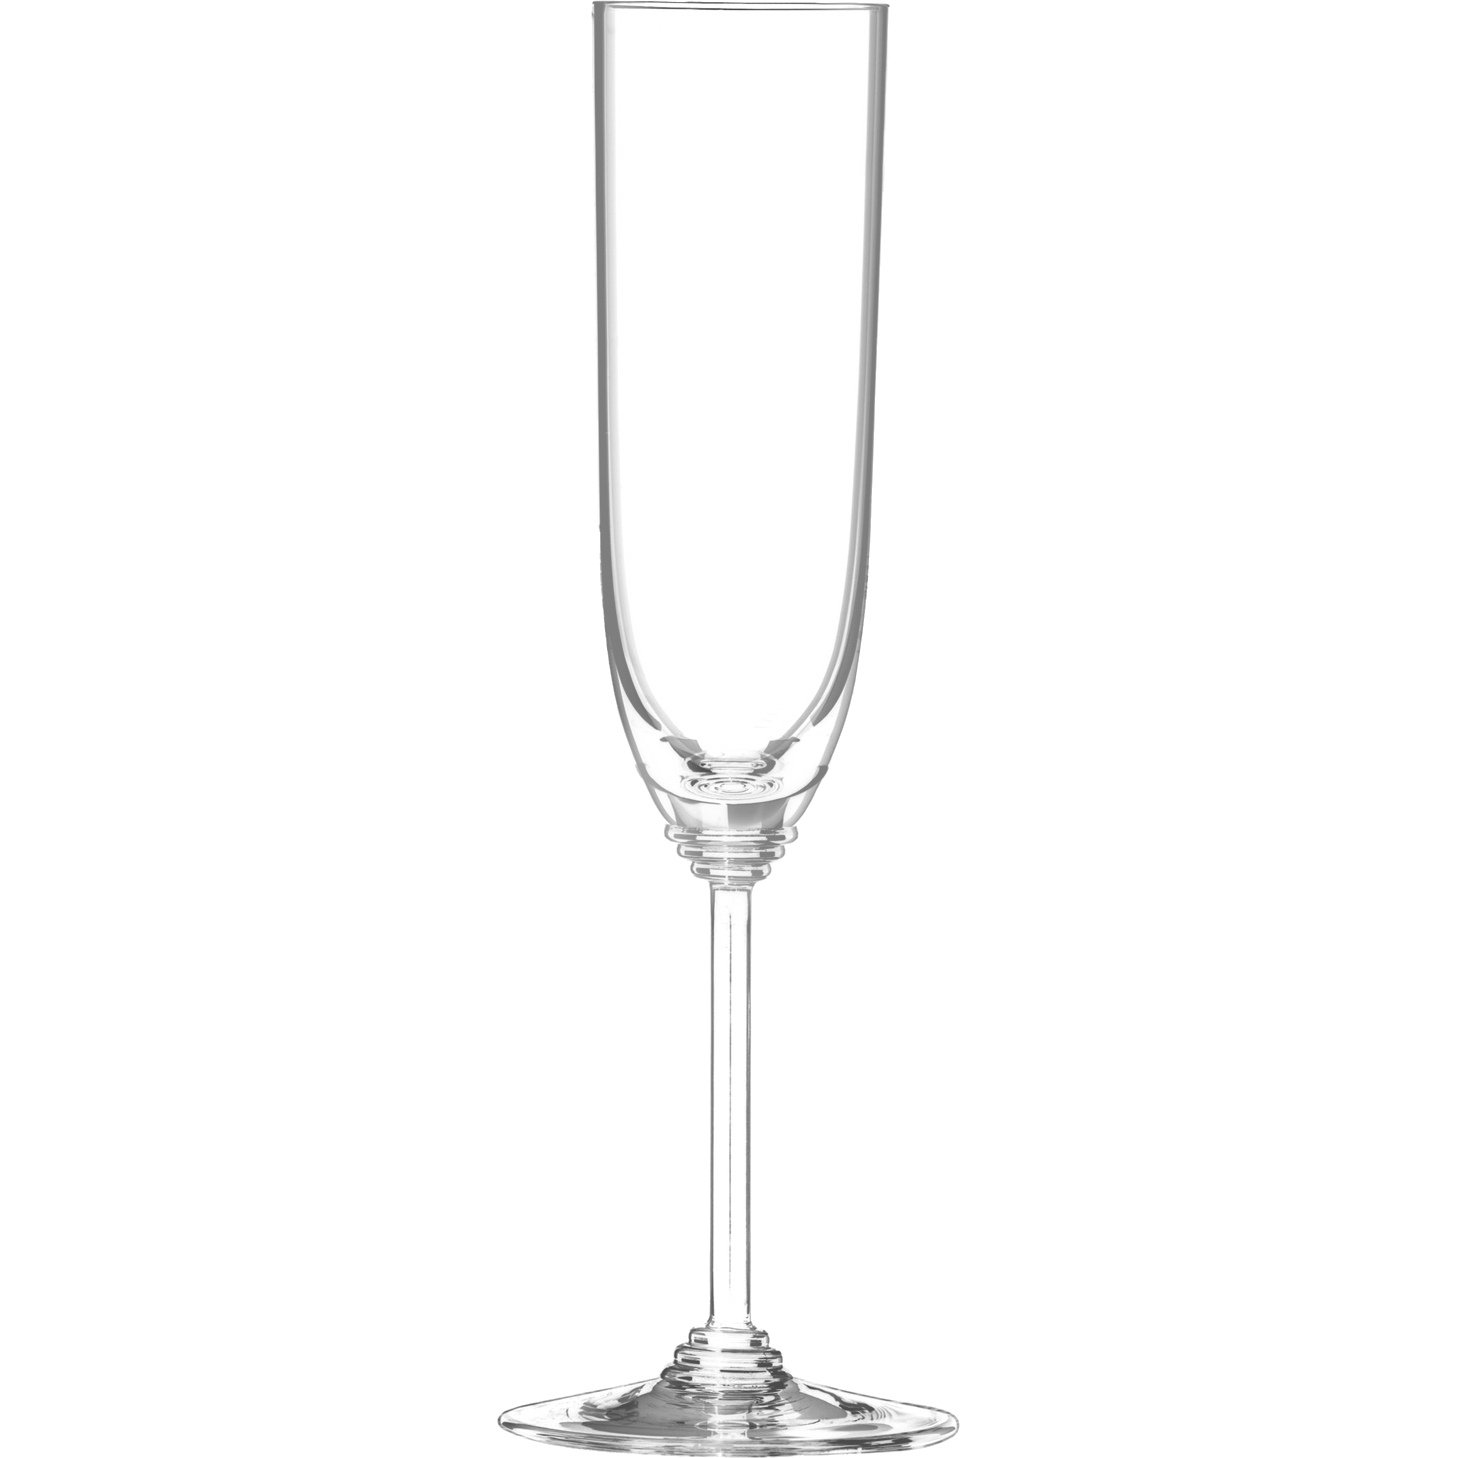 Riedel Wine Series Crystal Champagne Glass, Set of 6 by Riedel (Image #1)